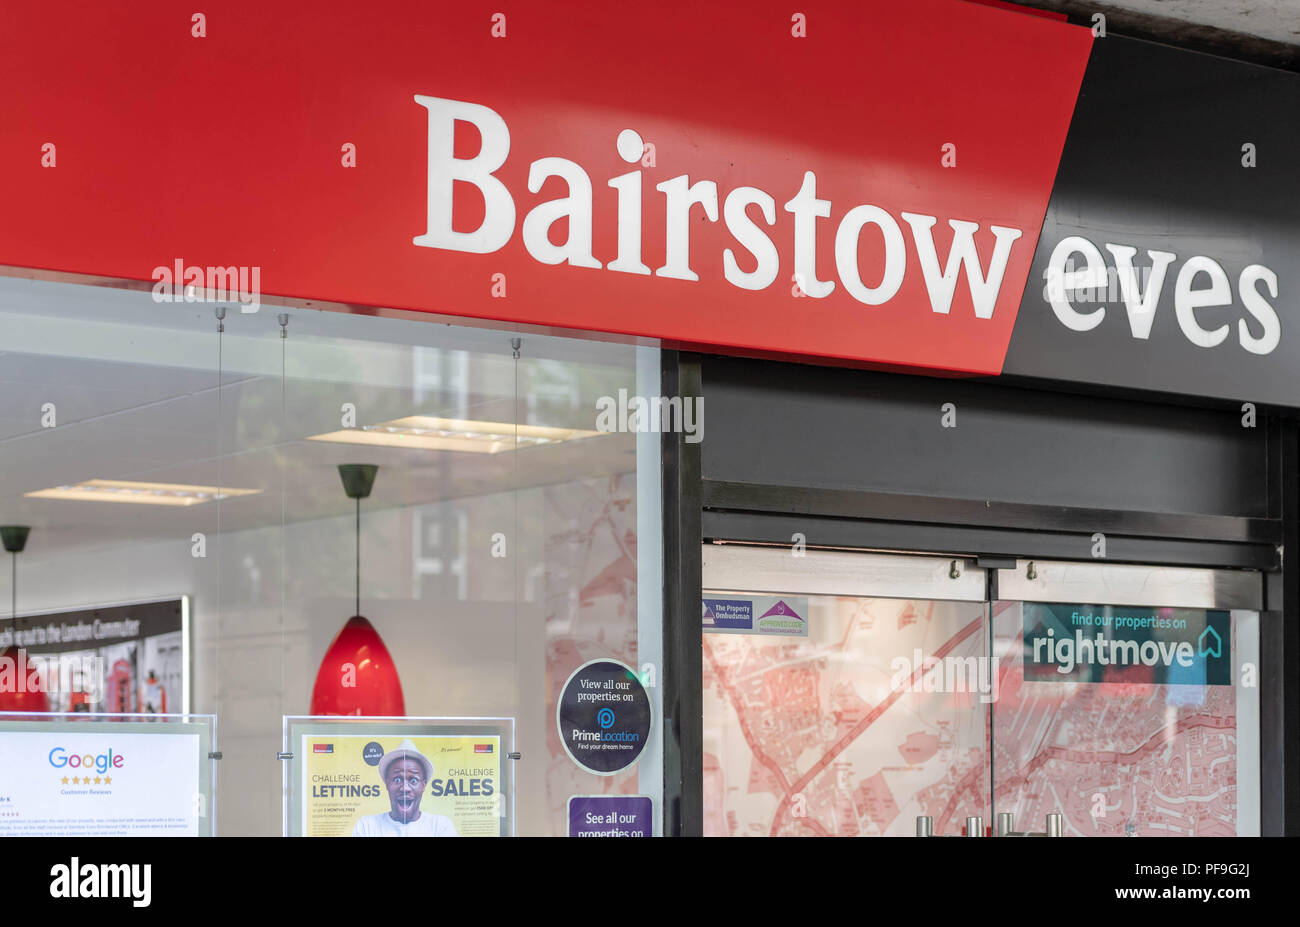 Bairstow Eves (part of the Countrywide plc Group) Estate agents shop signage in Brentwood Essex - Stock Image